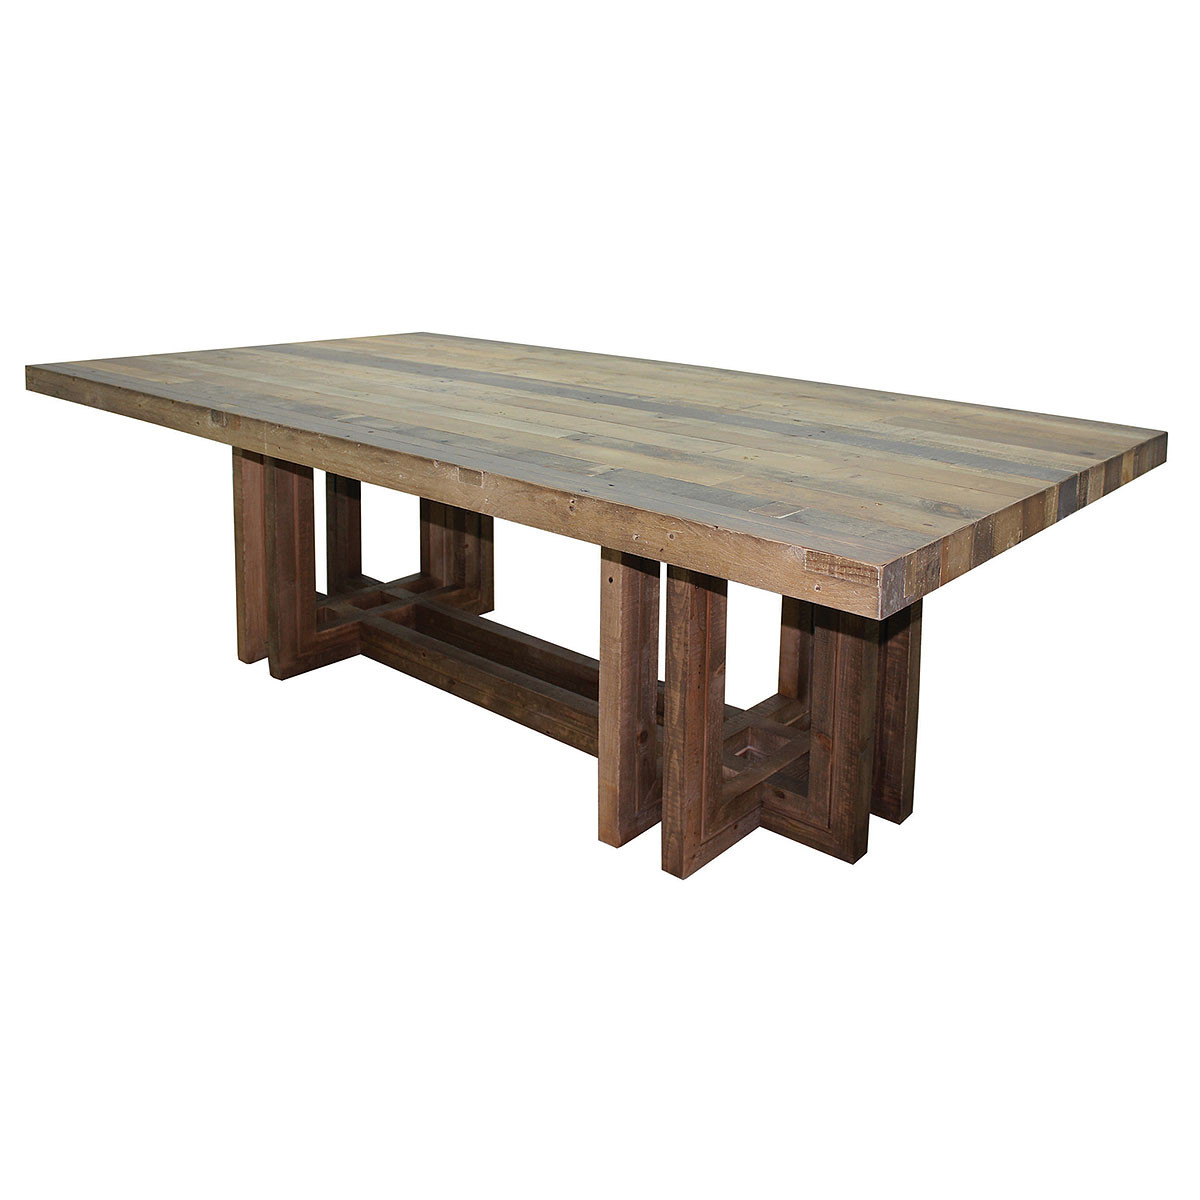 Home FURNITURE Dining Room Angora Dining Table 95